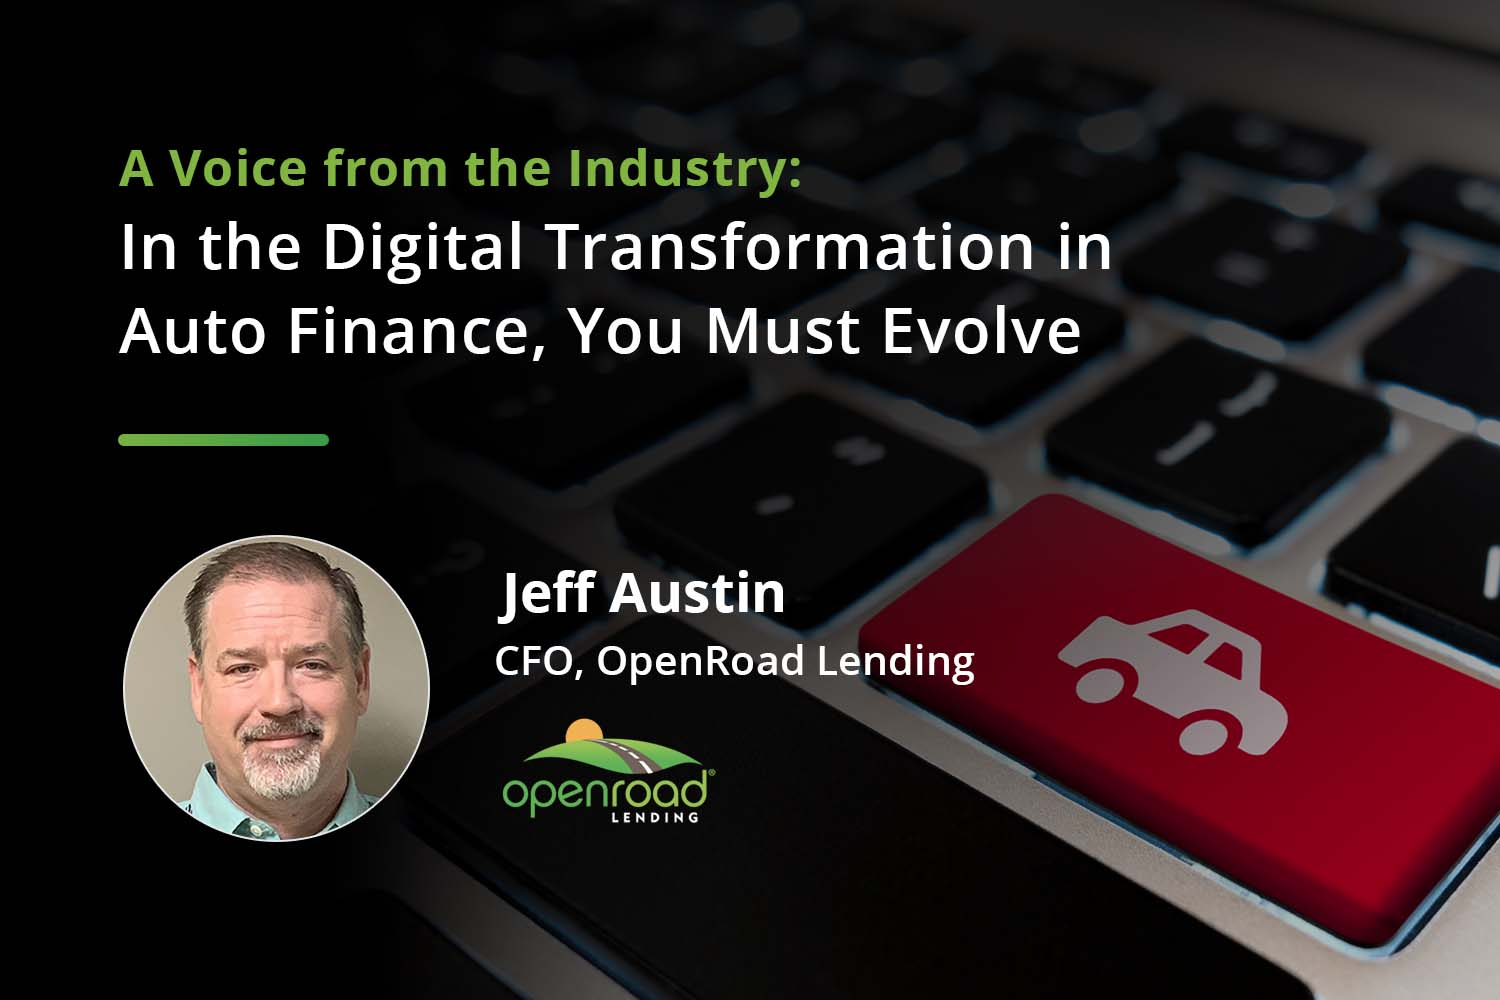 Voice of the Industry: Jeff Austin, CFO, OpenRoad Lending